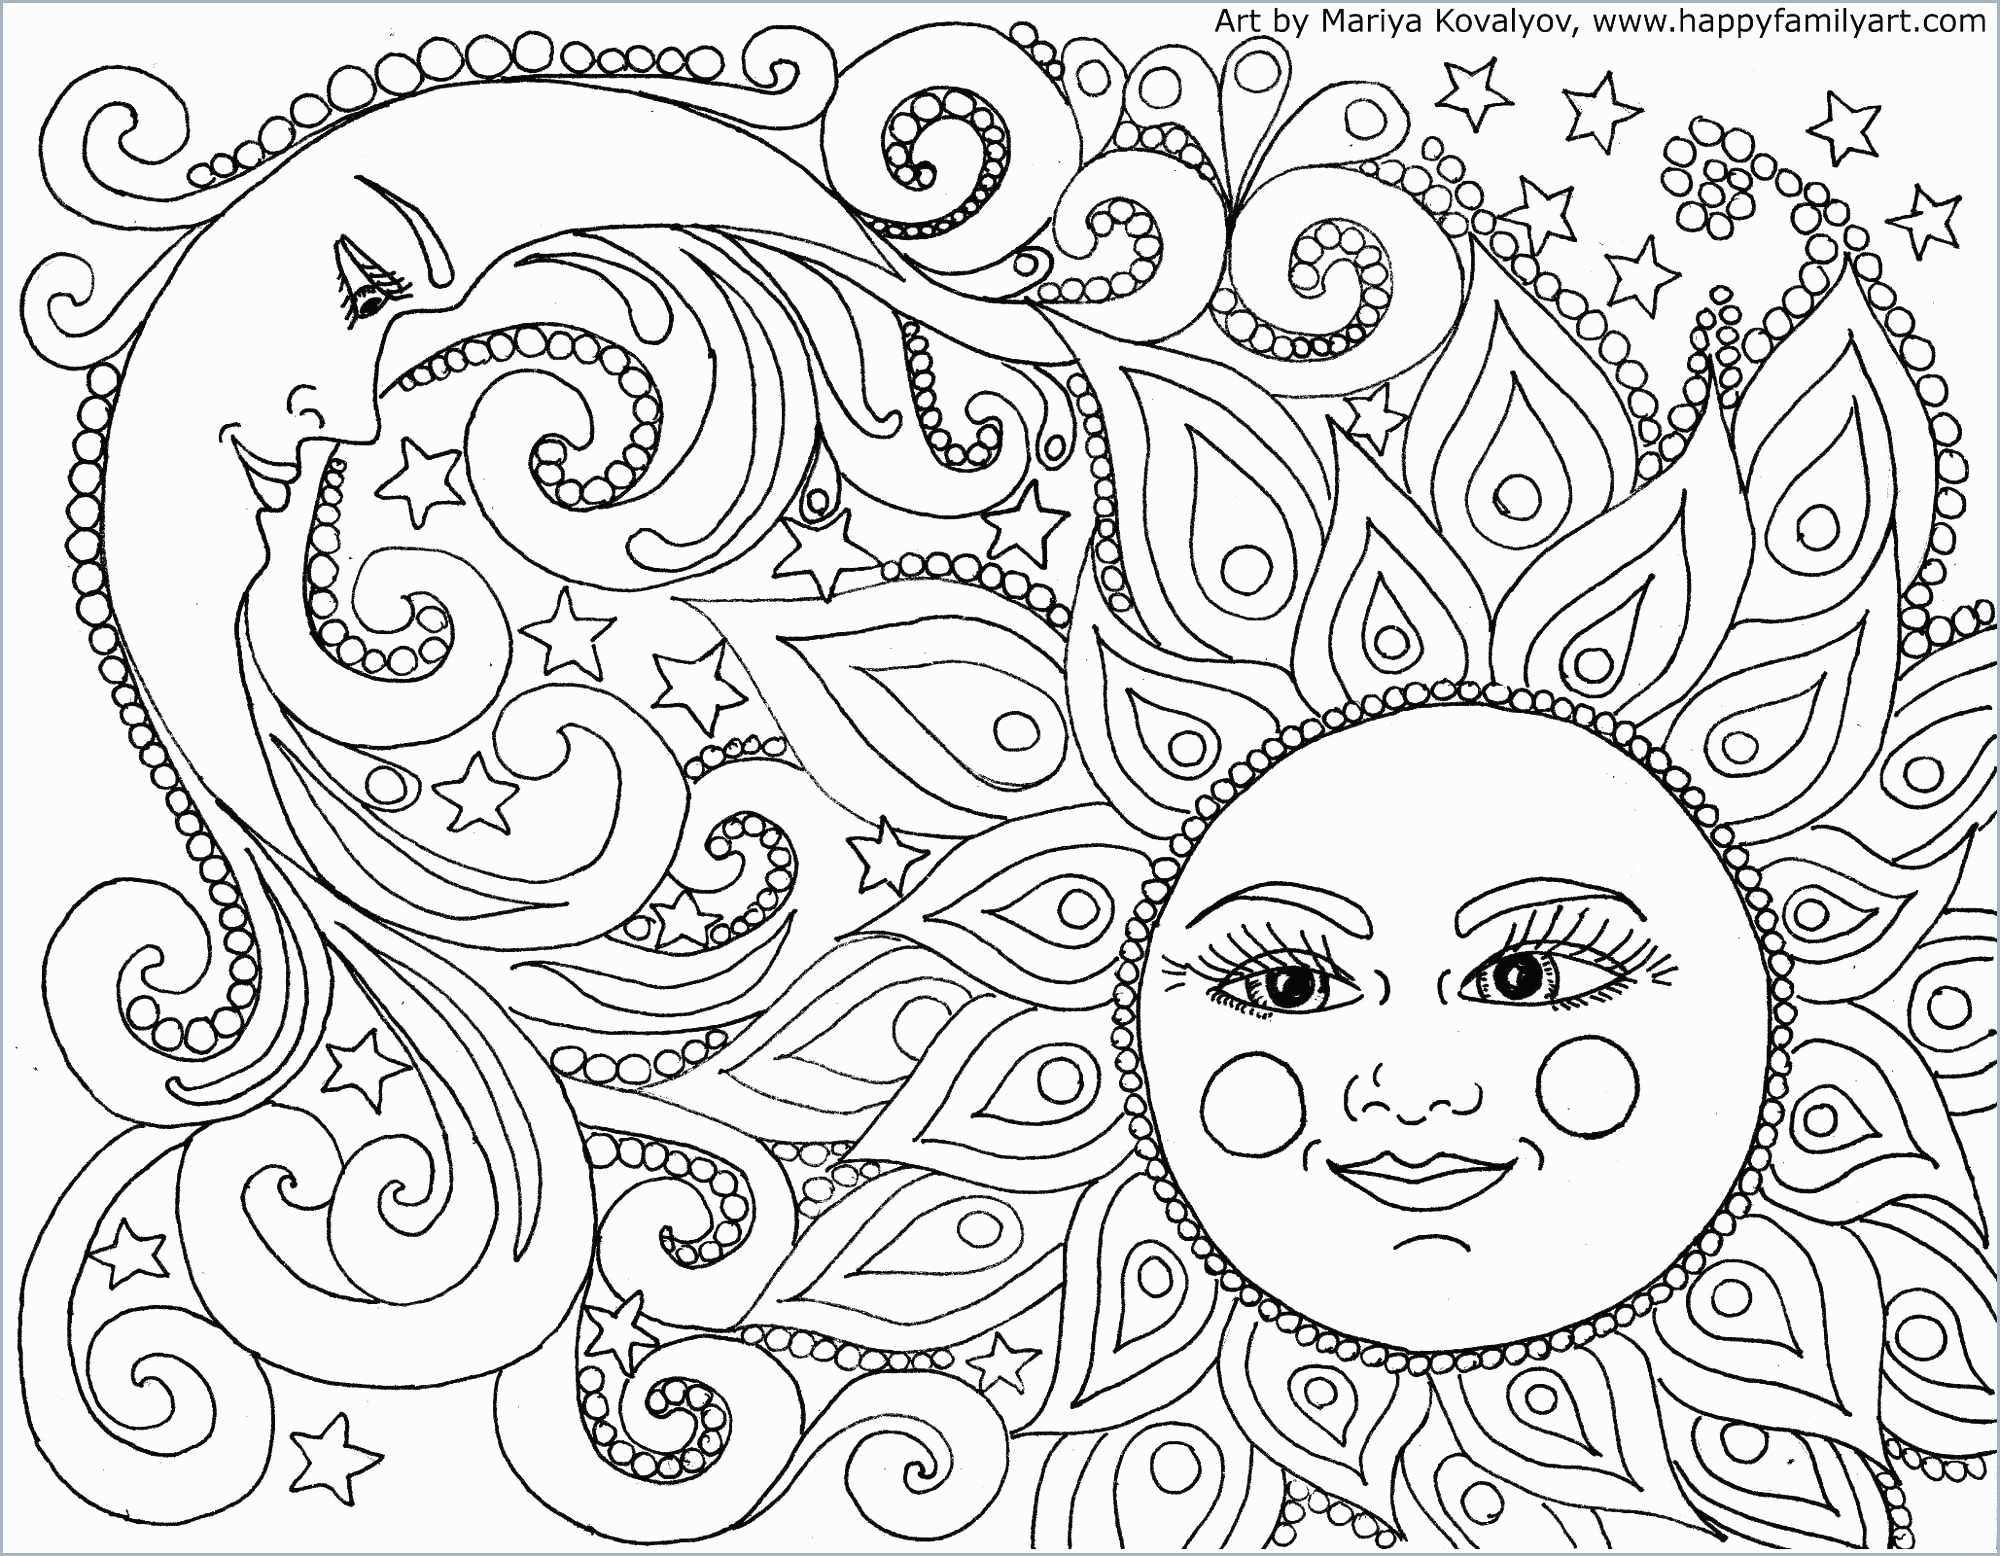 Happy Birthday Ausmalbilder Inspirierend Minions Coloring Pages Great Minions Ausmalbilder Baby Elegant Happy Stock